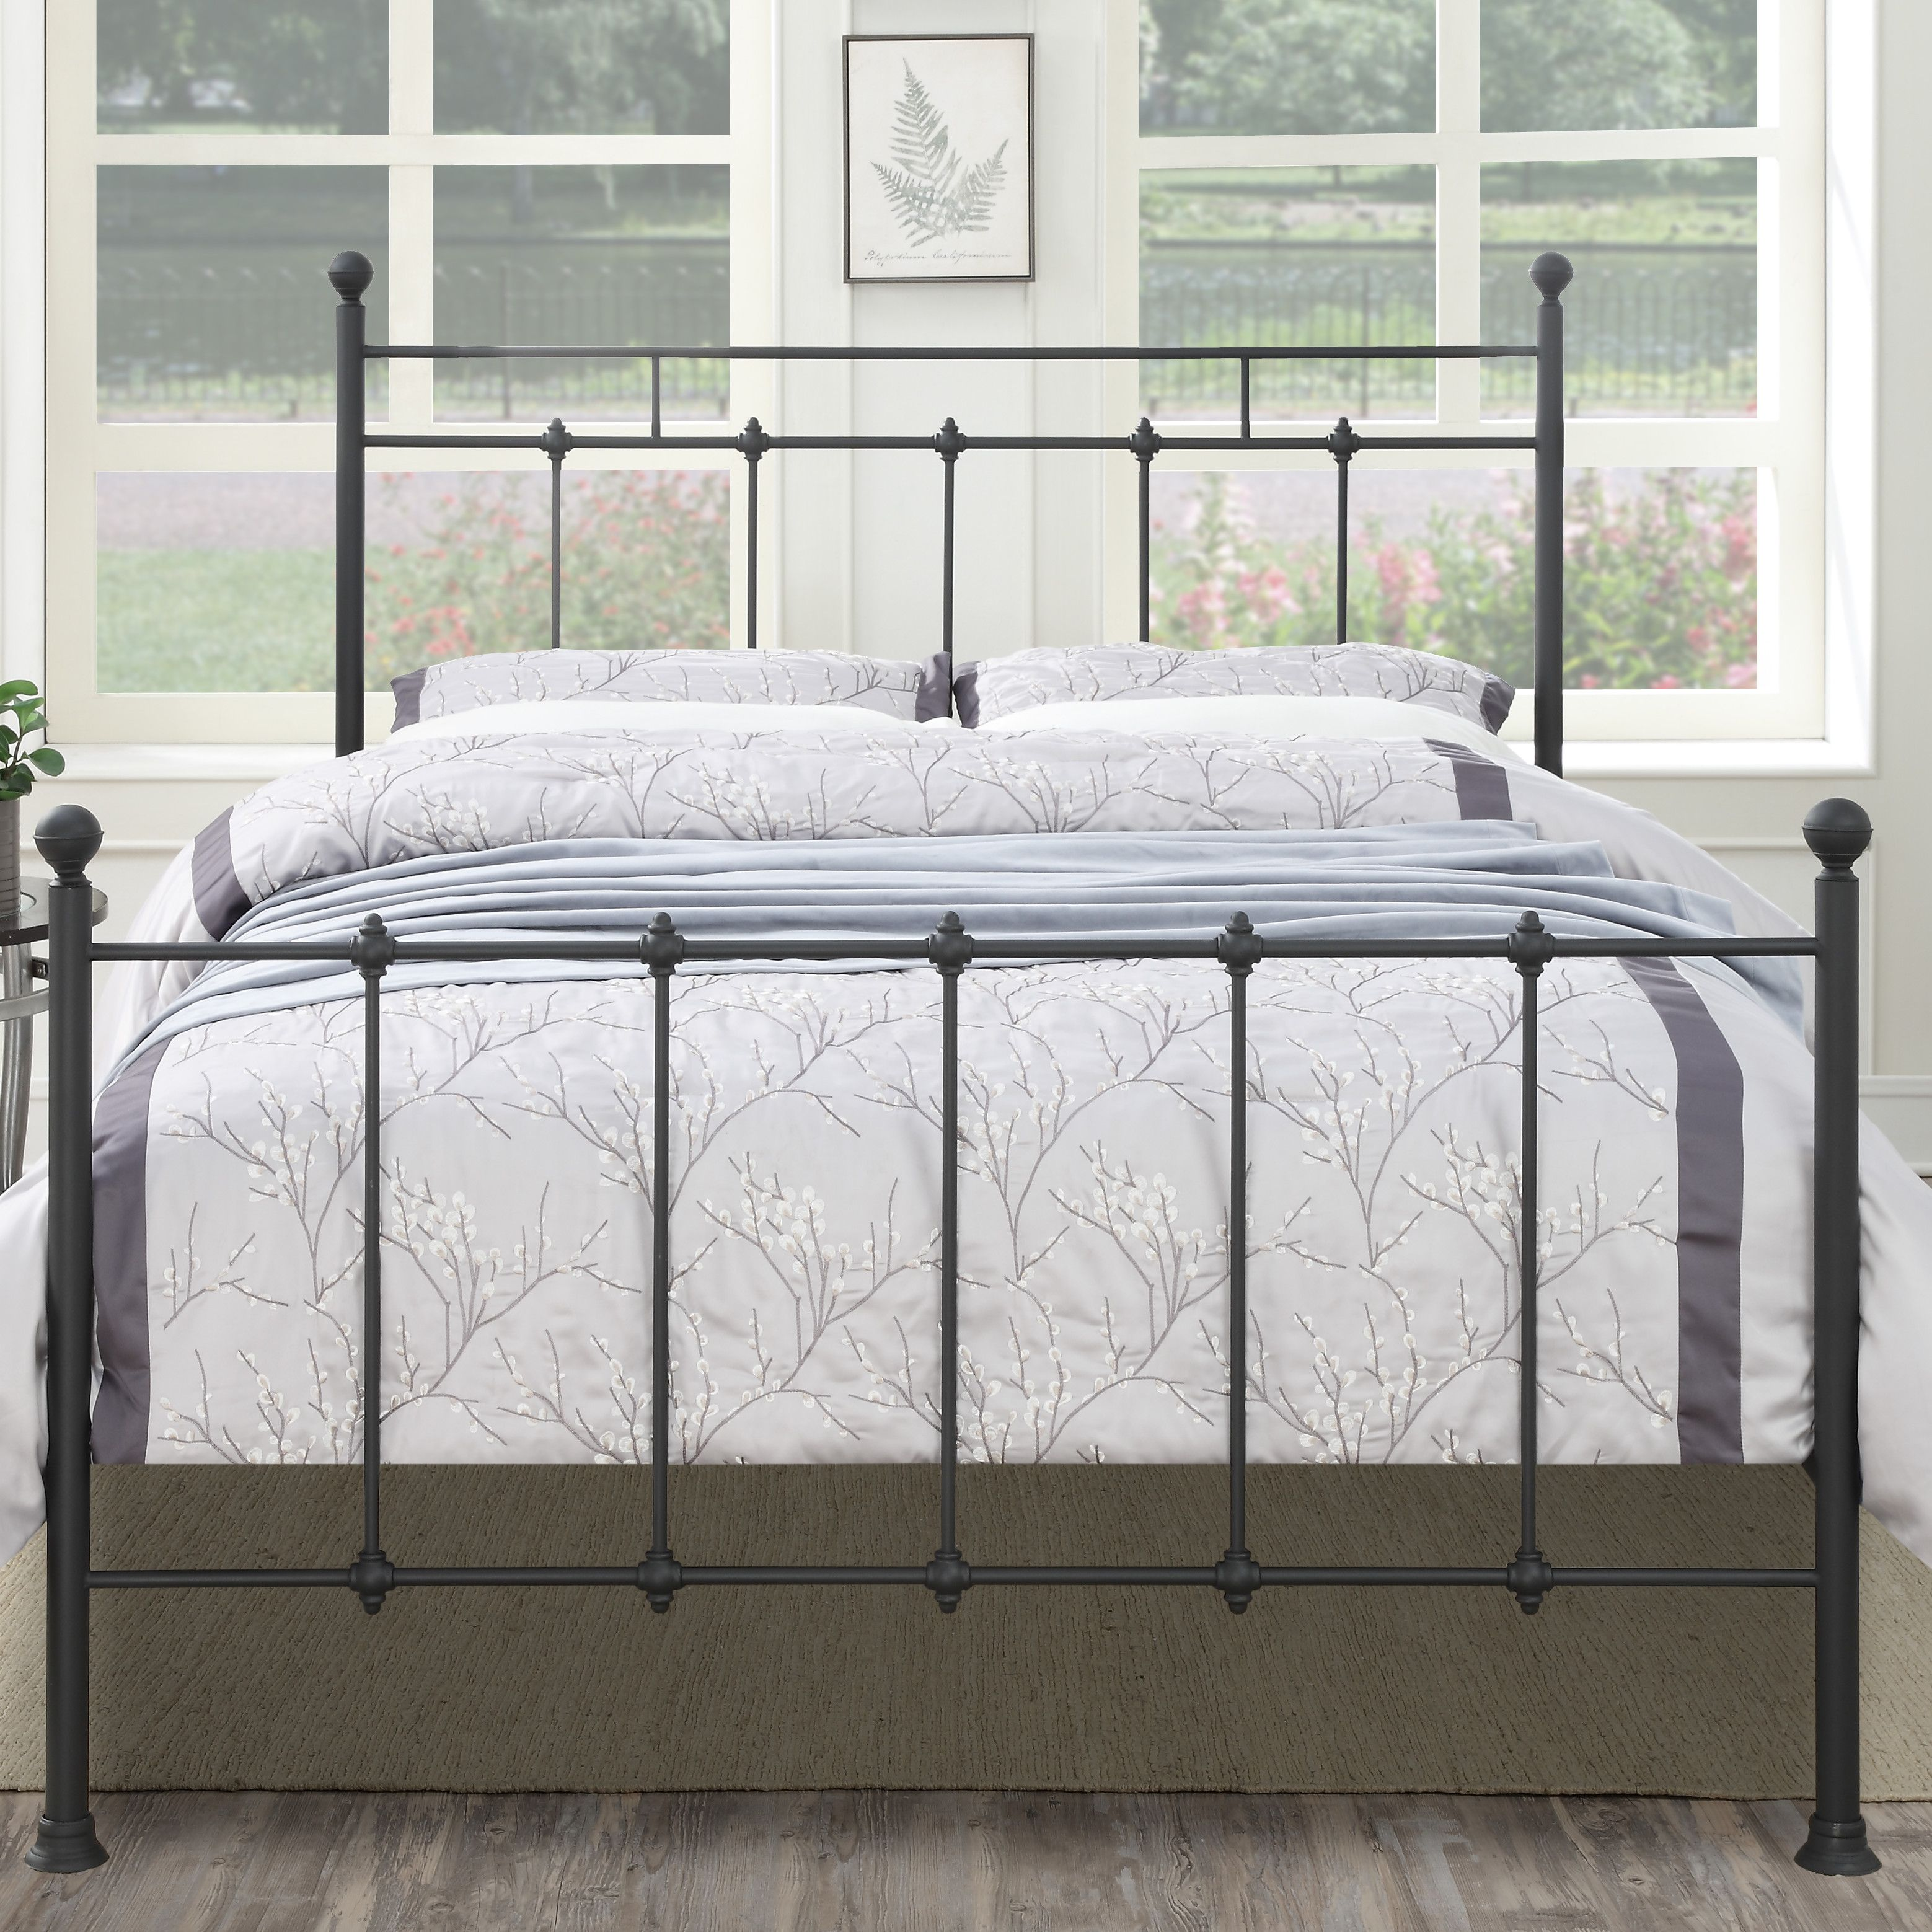 Forreston Four Poster Bed Queen metal bed, Metal beds, Bed